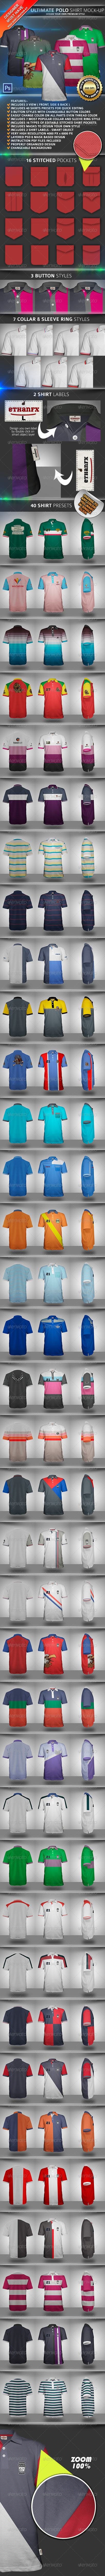 Polo Shirt Mock-Up - Apparel Product Mock-Ups